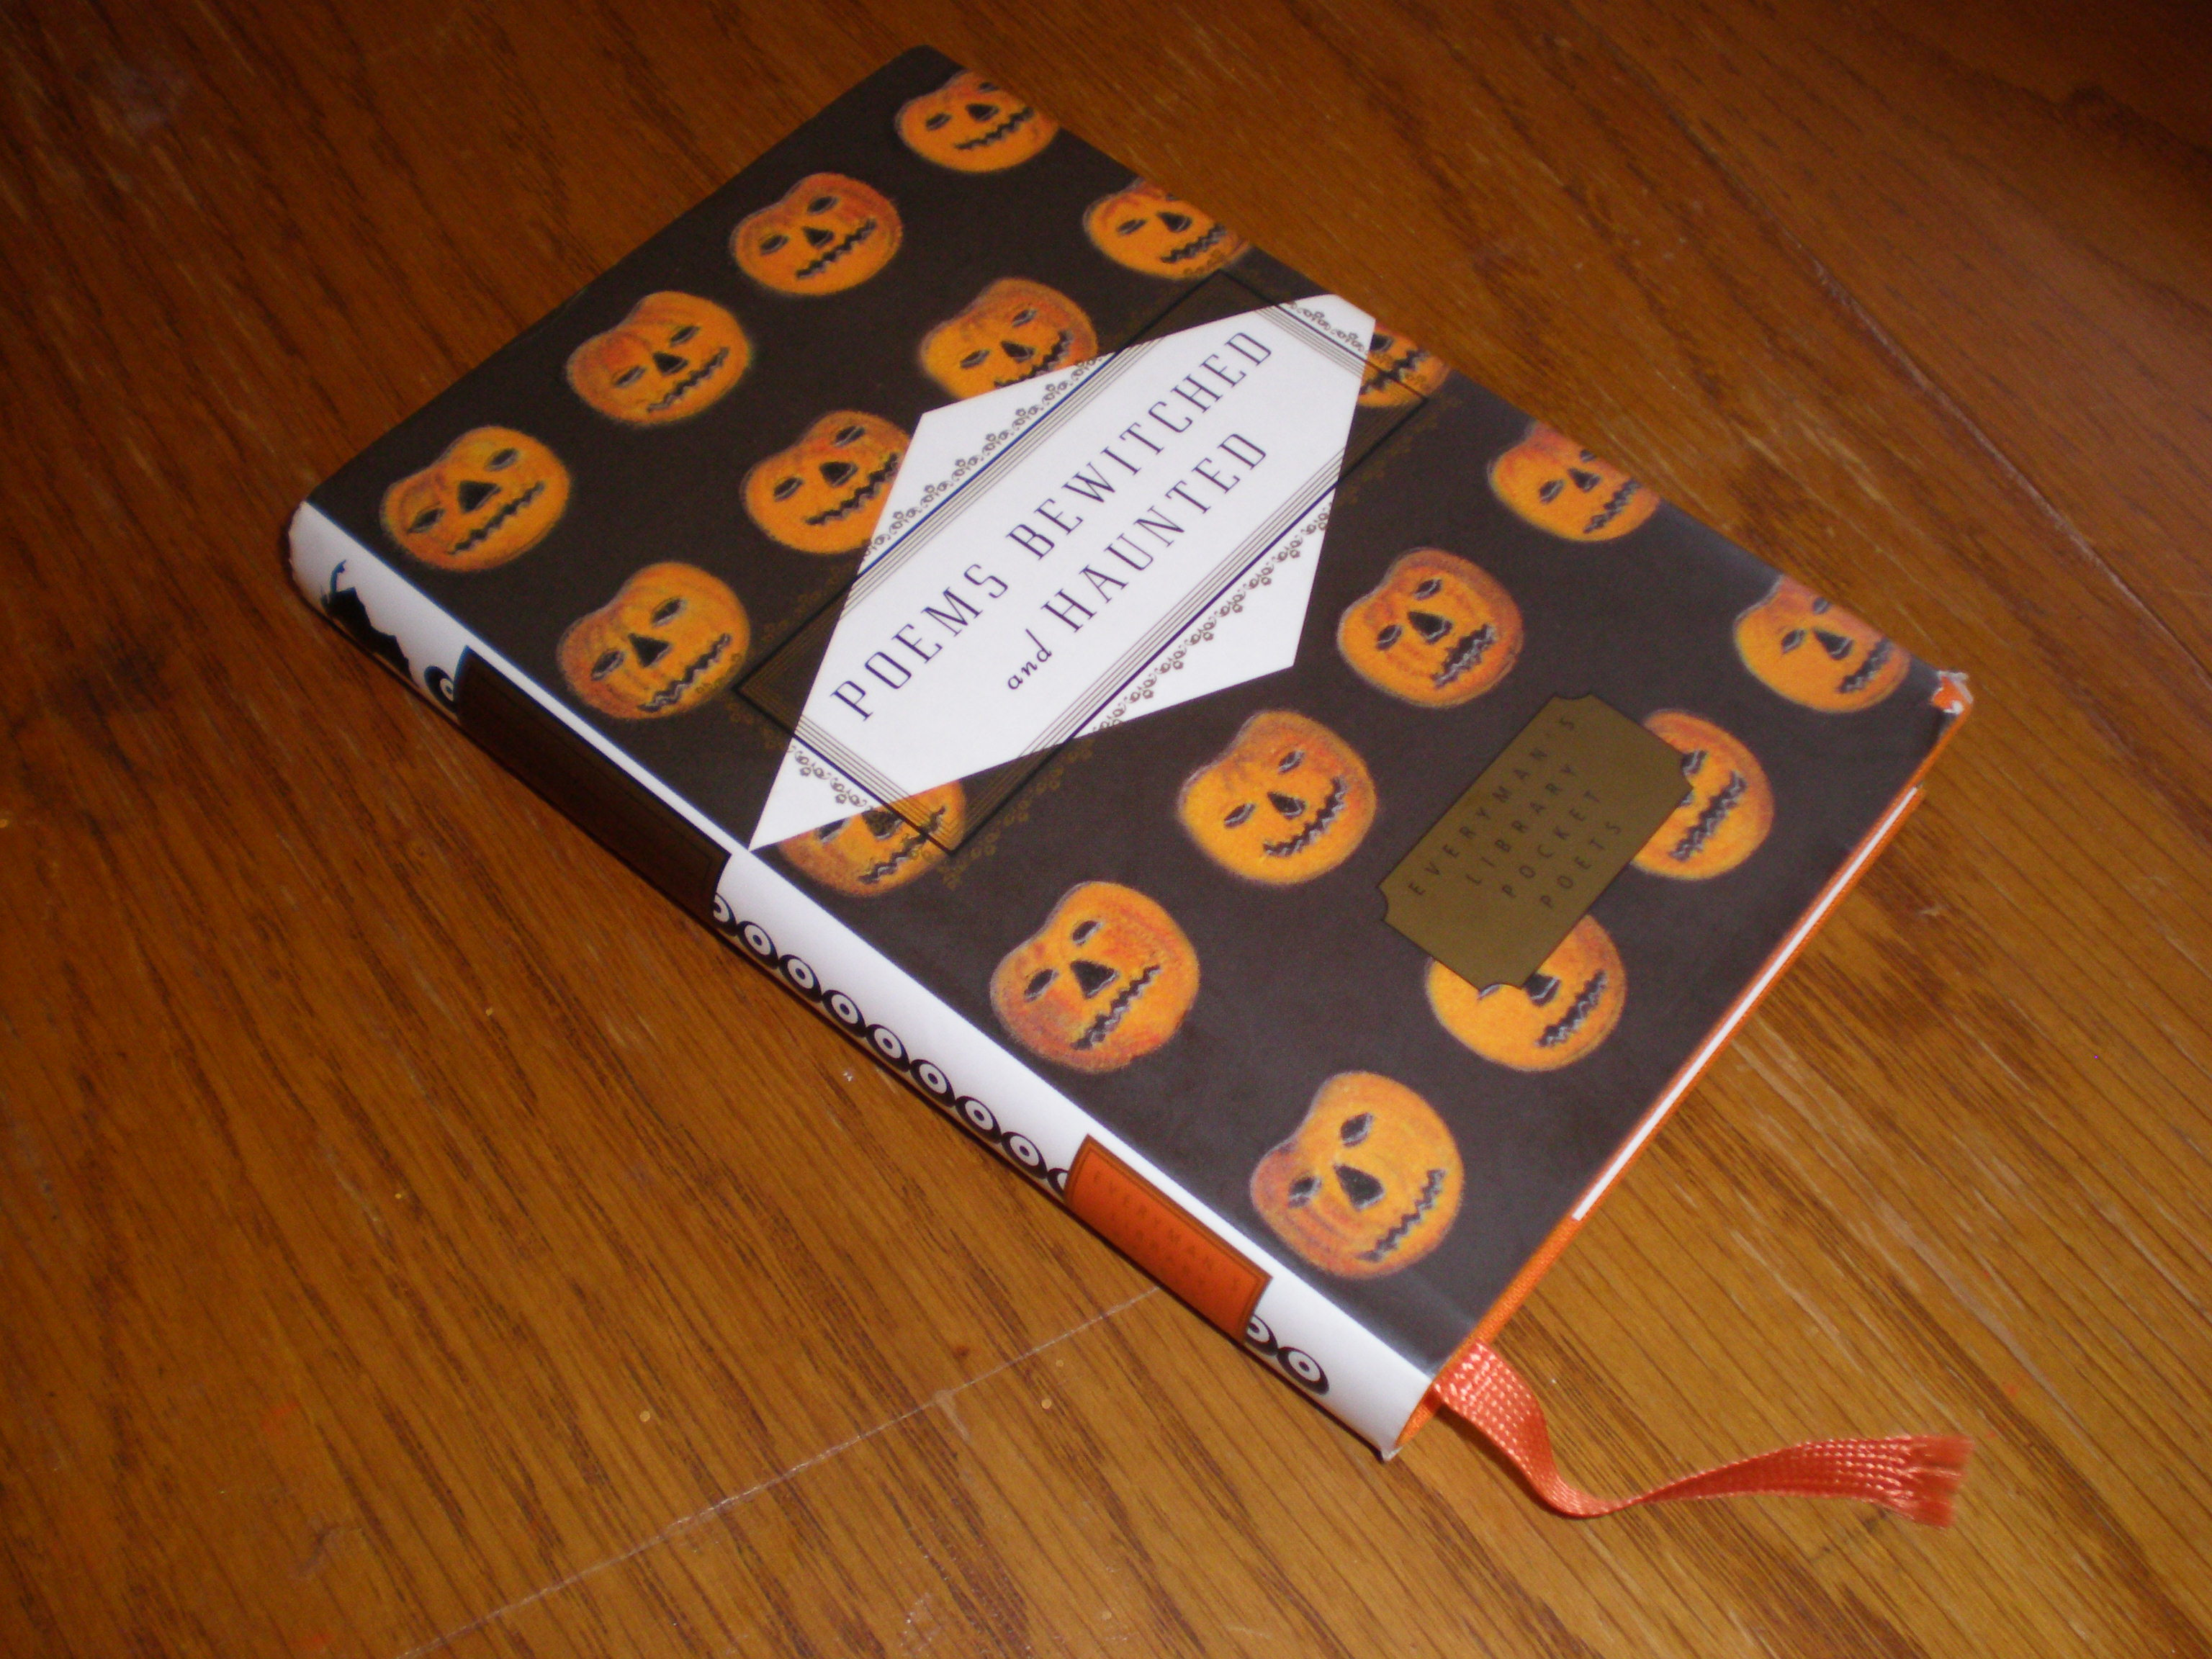 20 halloween poems: suggested reading for the season | annie neugebauer